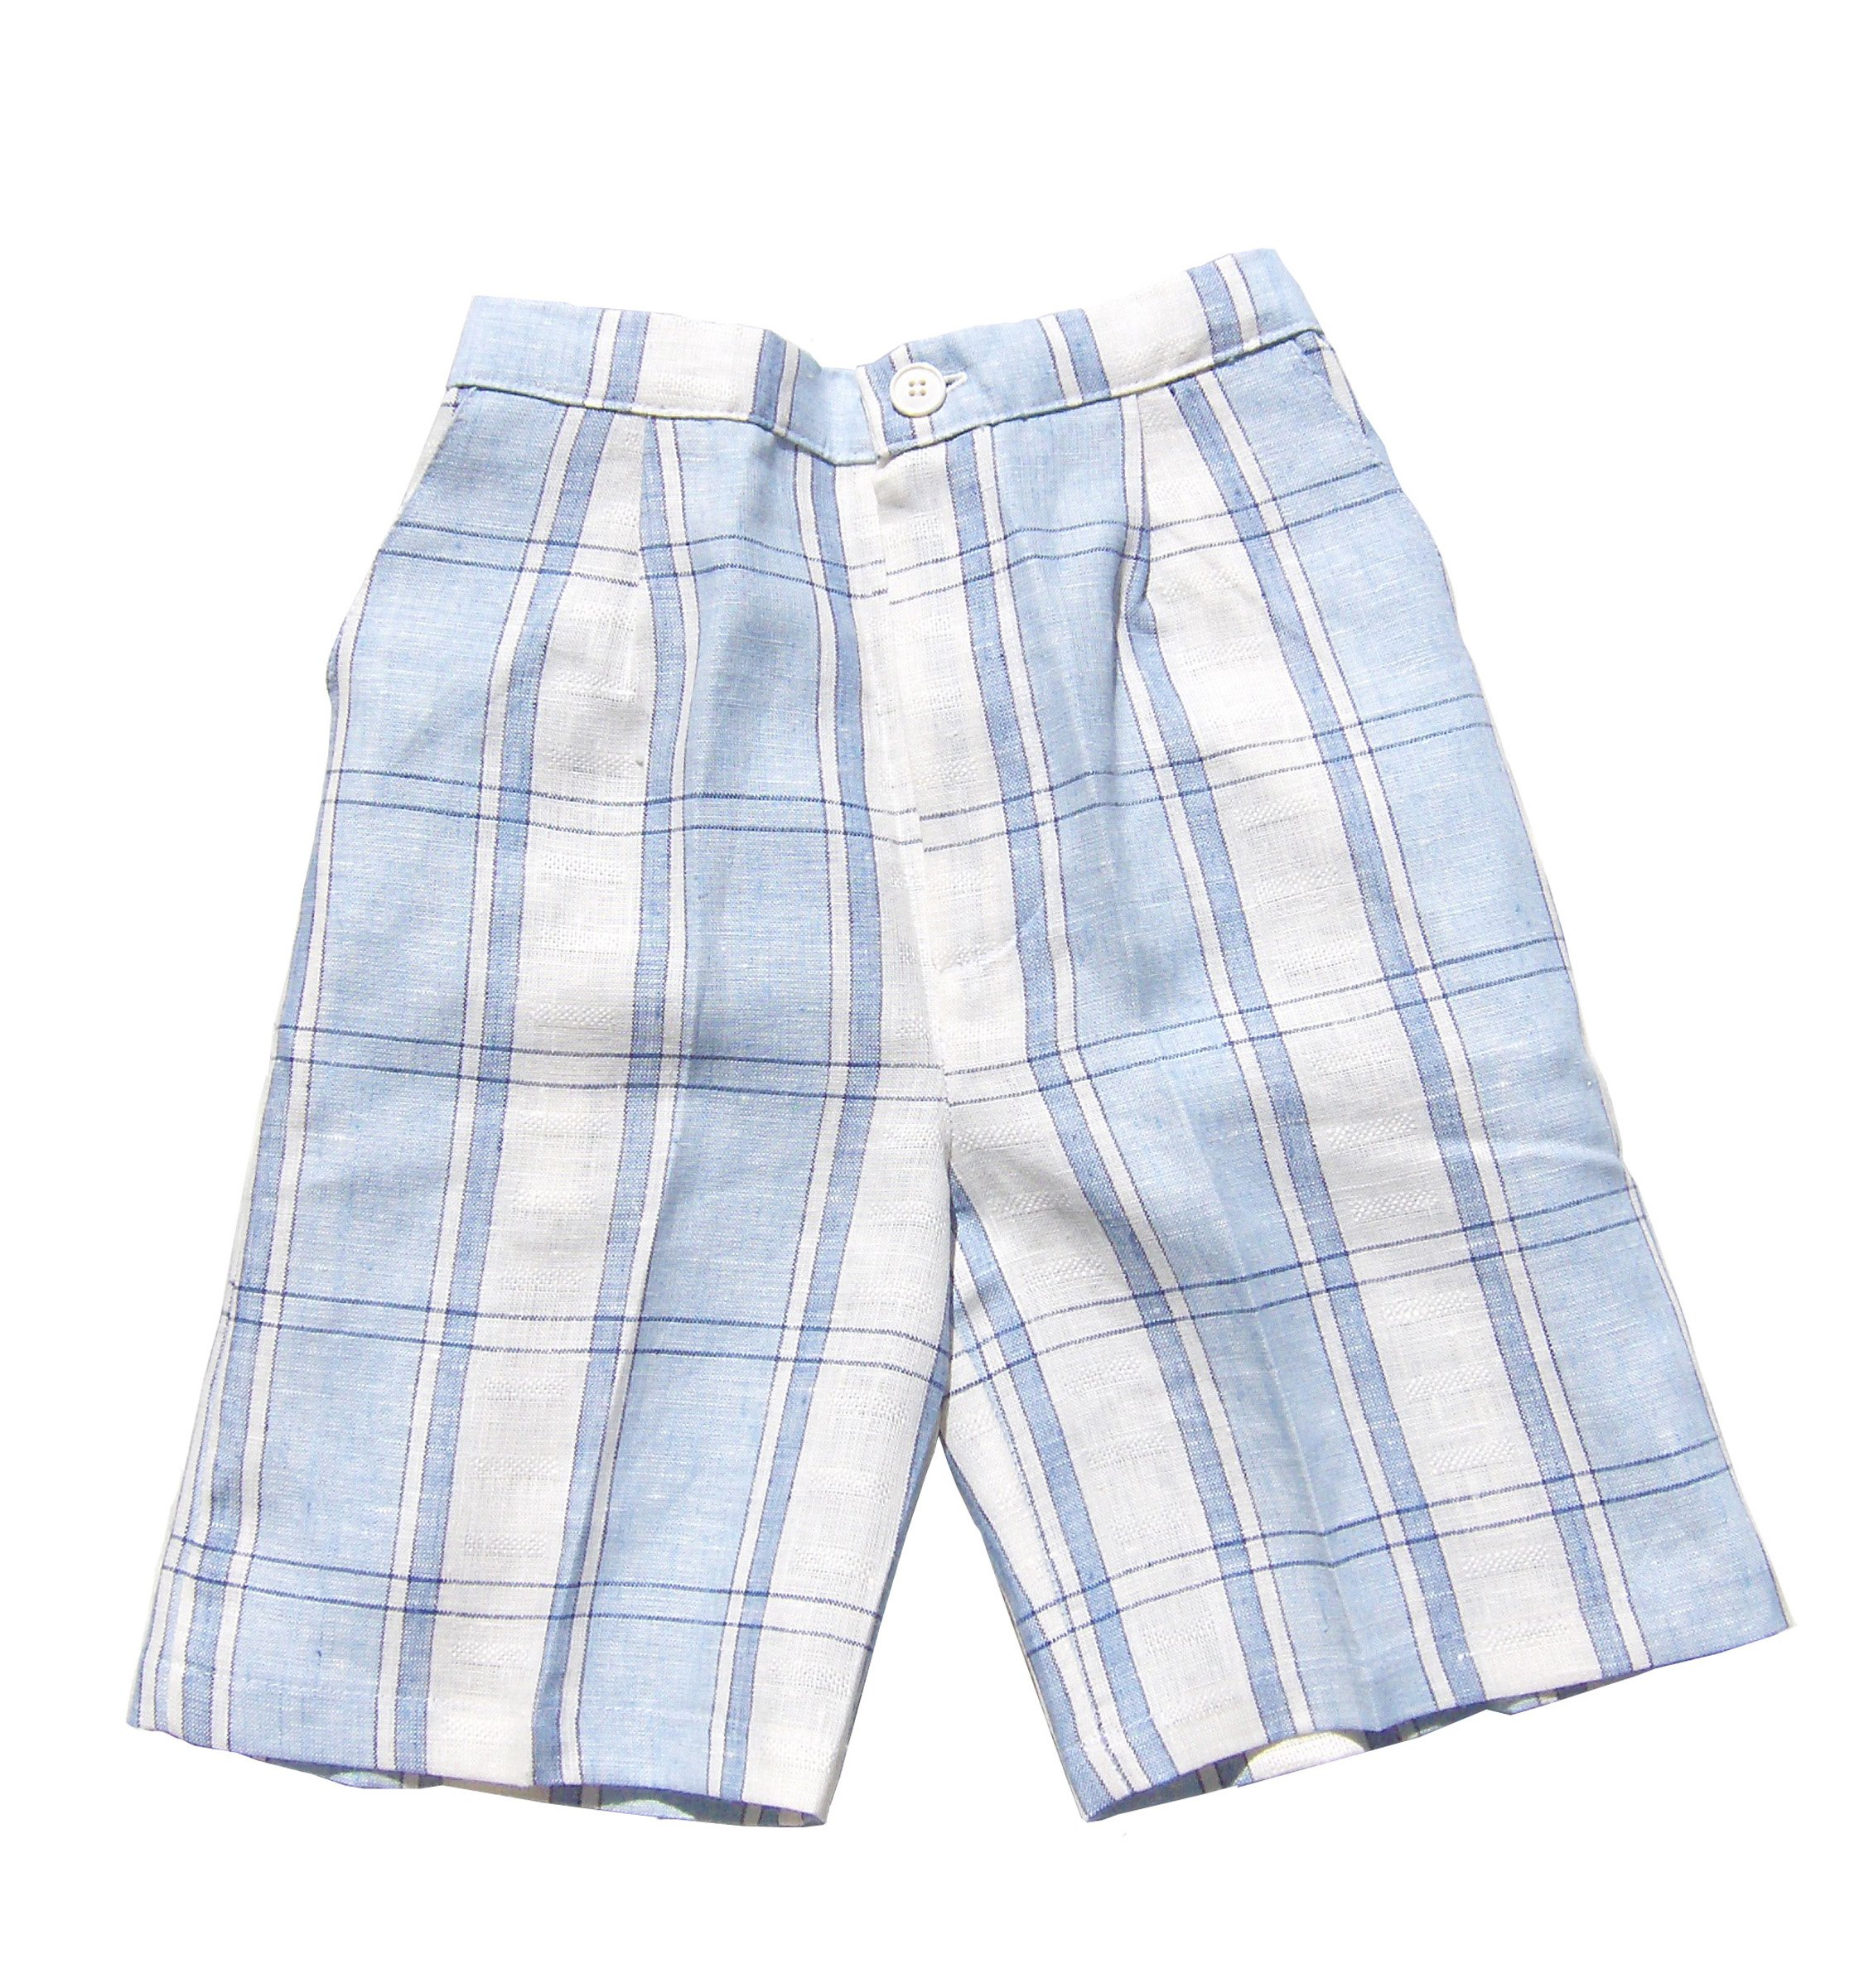 Aby's Kids Boys Linen Shorts Plaid 12